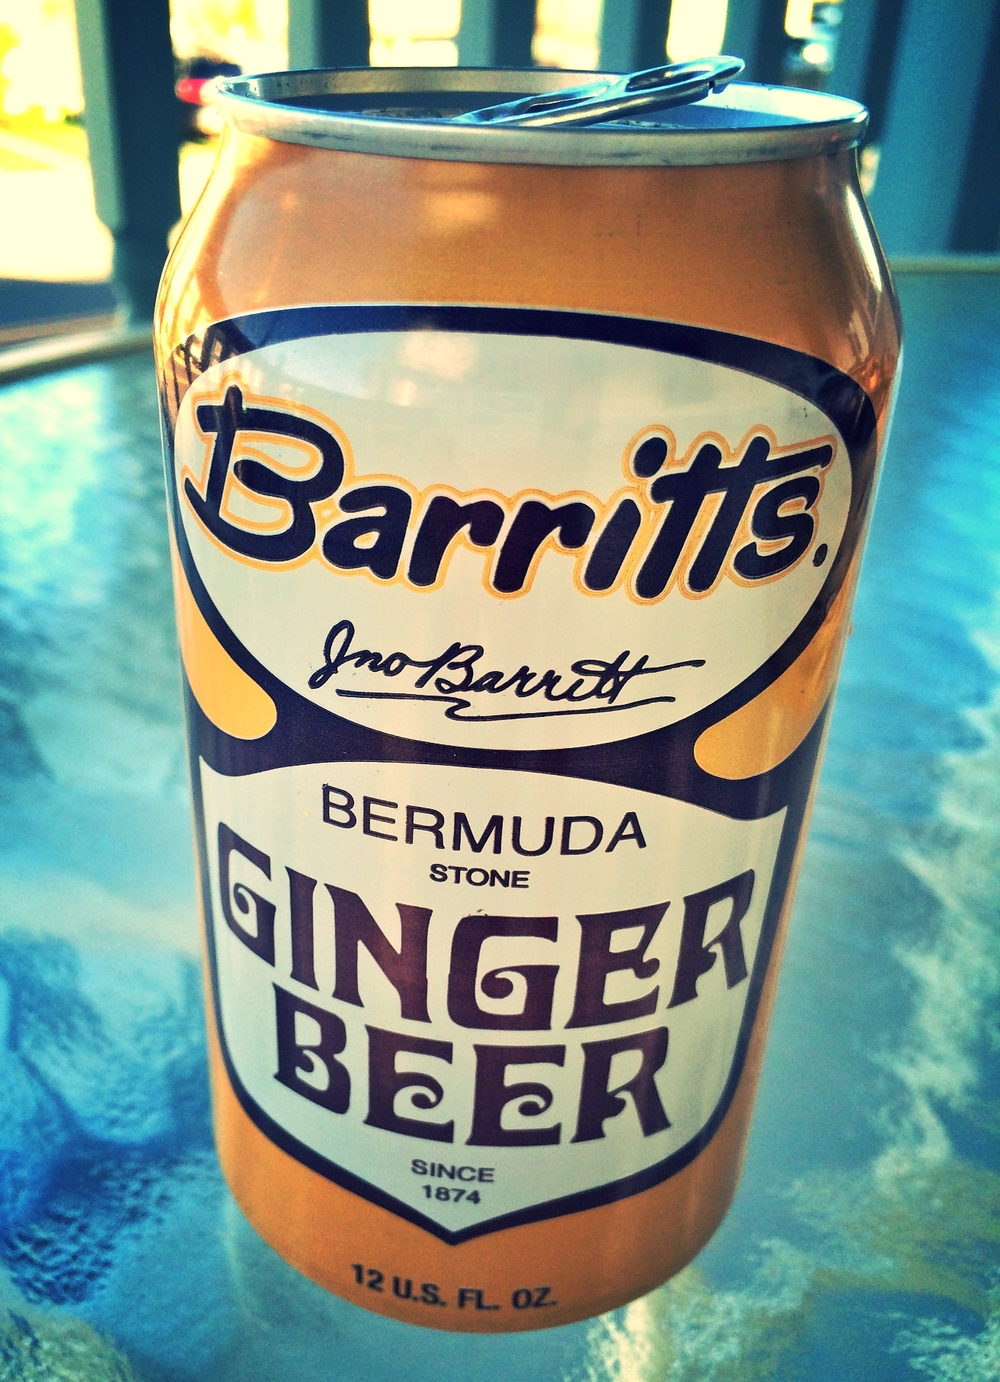 Ginger Beer is nonalcoholic and is available at larger grocery stores and beer distributors.